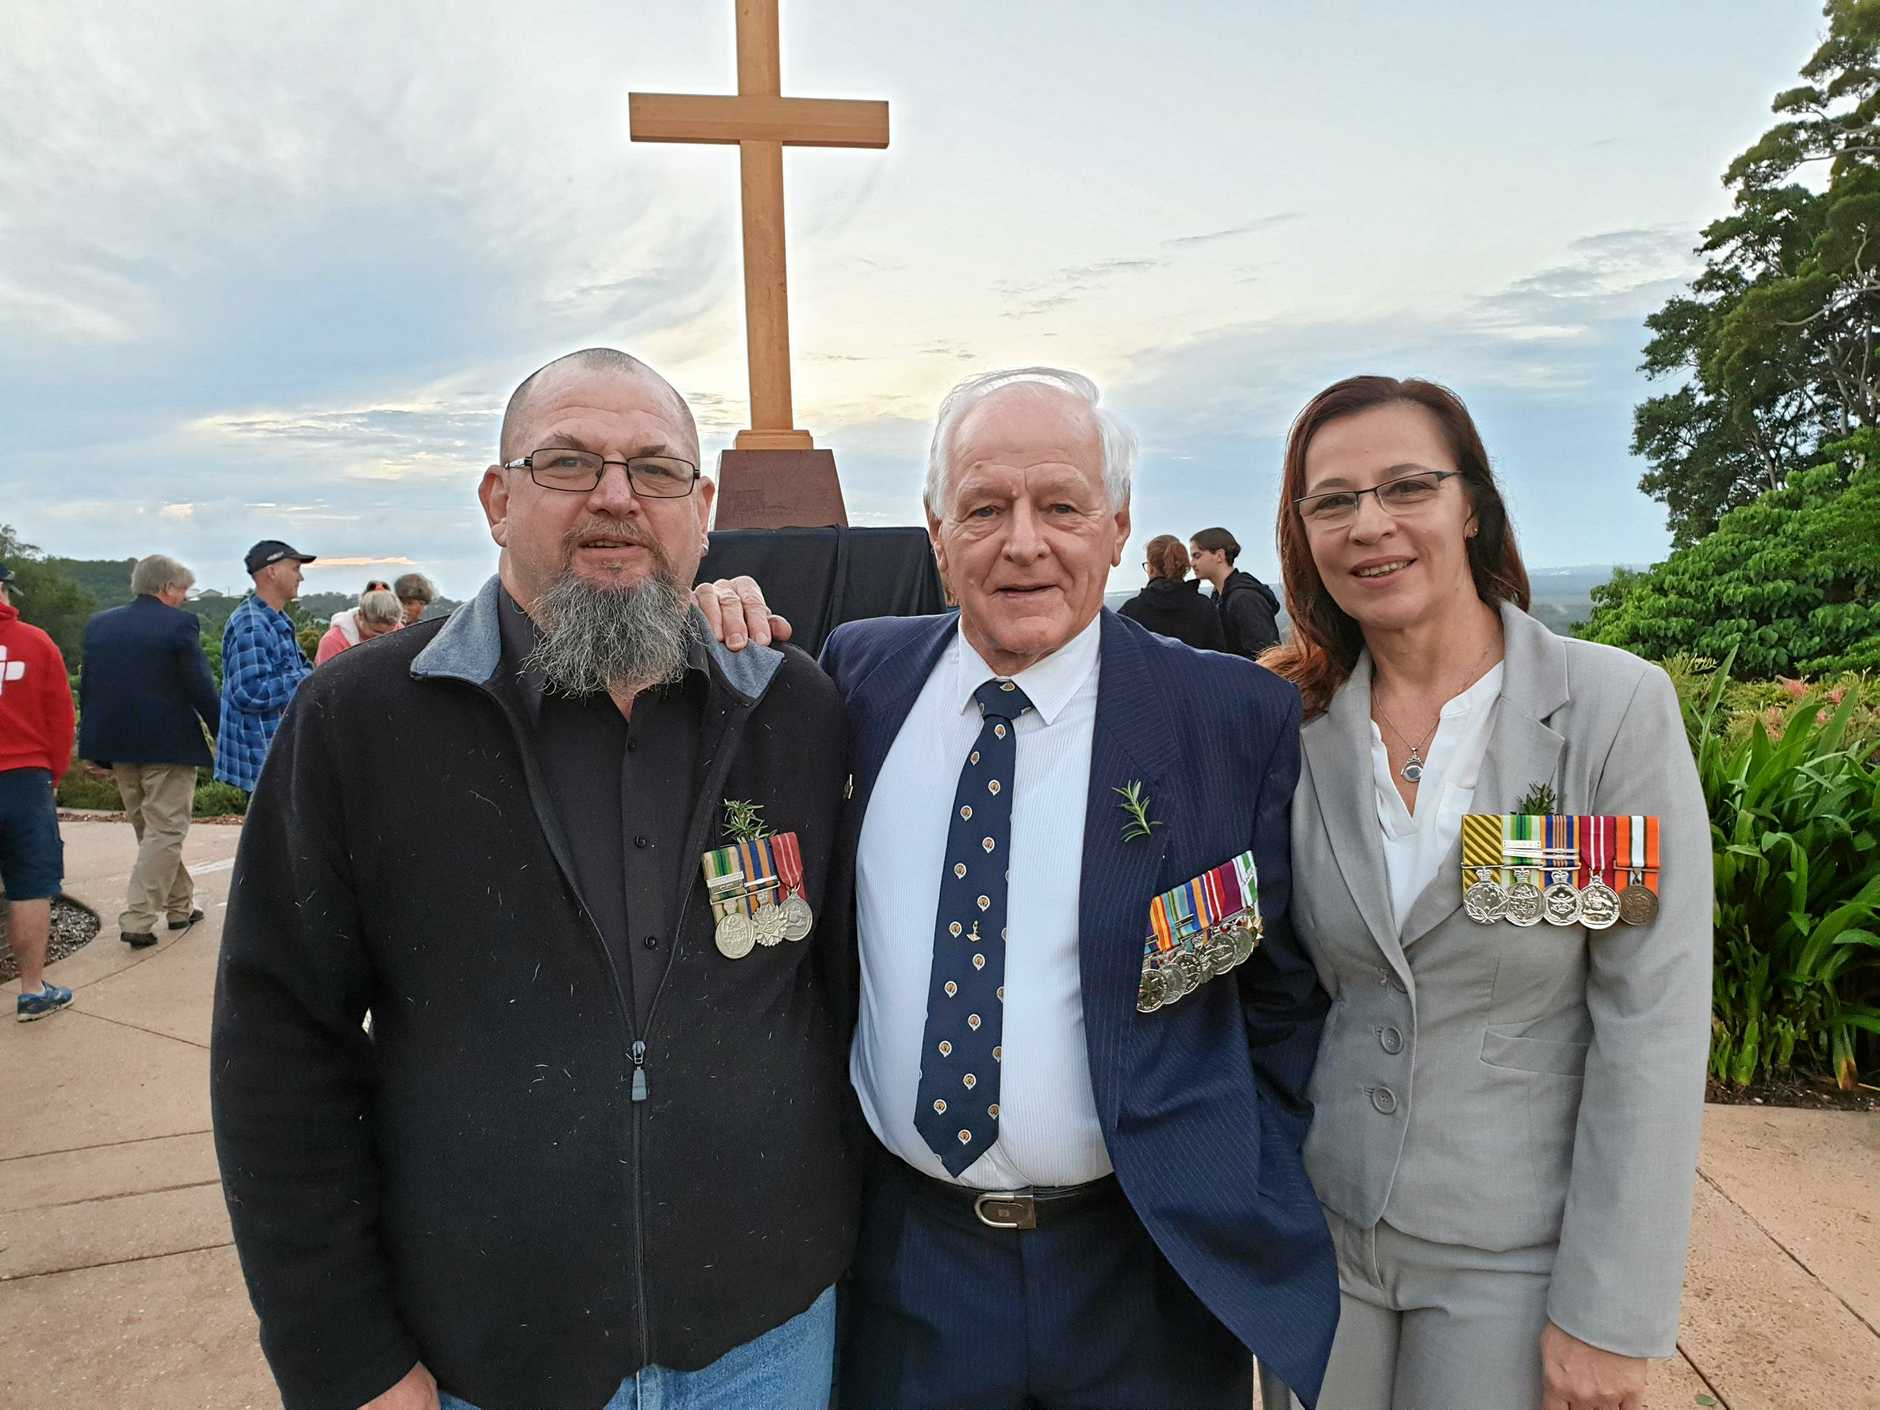 Ex-servicemen and women Stuart, Laurie and Bronwyn Johnstone came to the Buderim dawn service as a family.